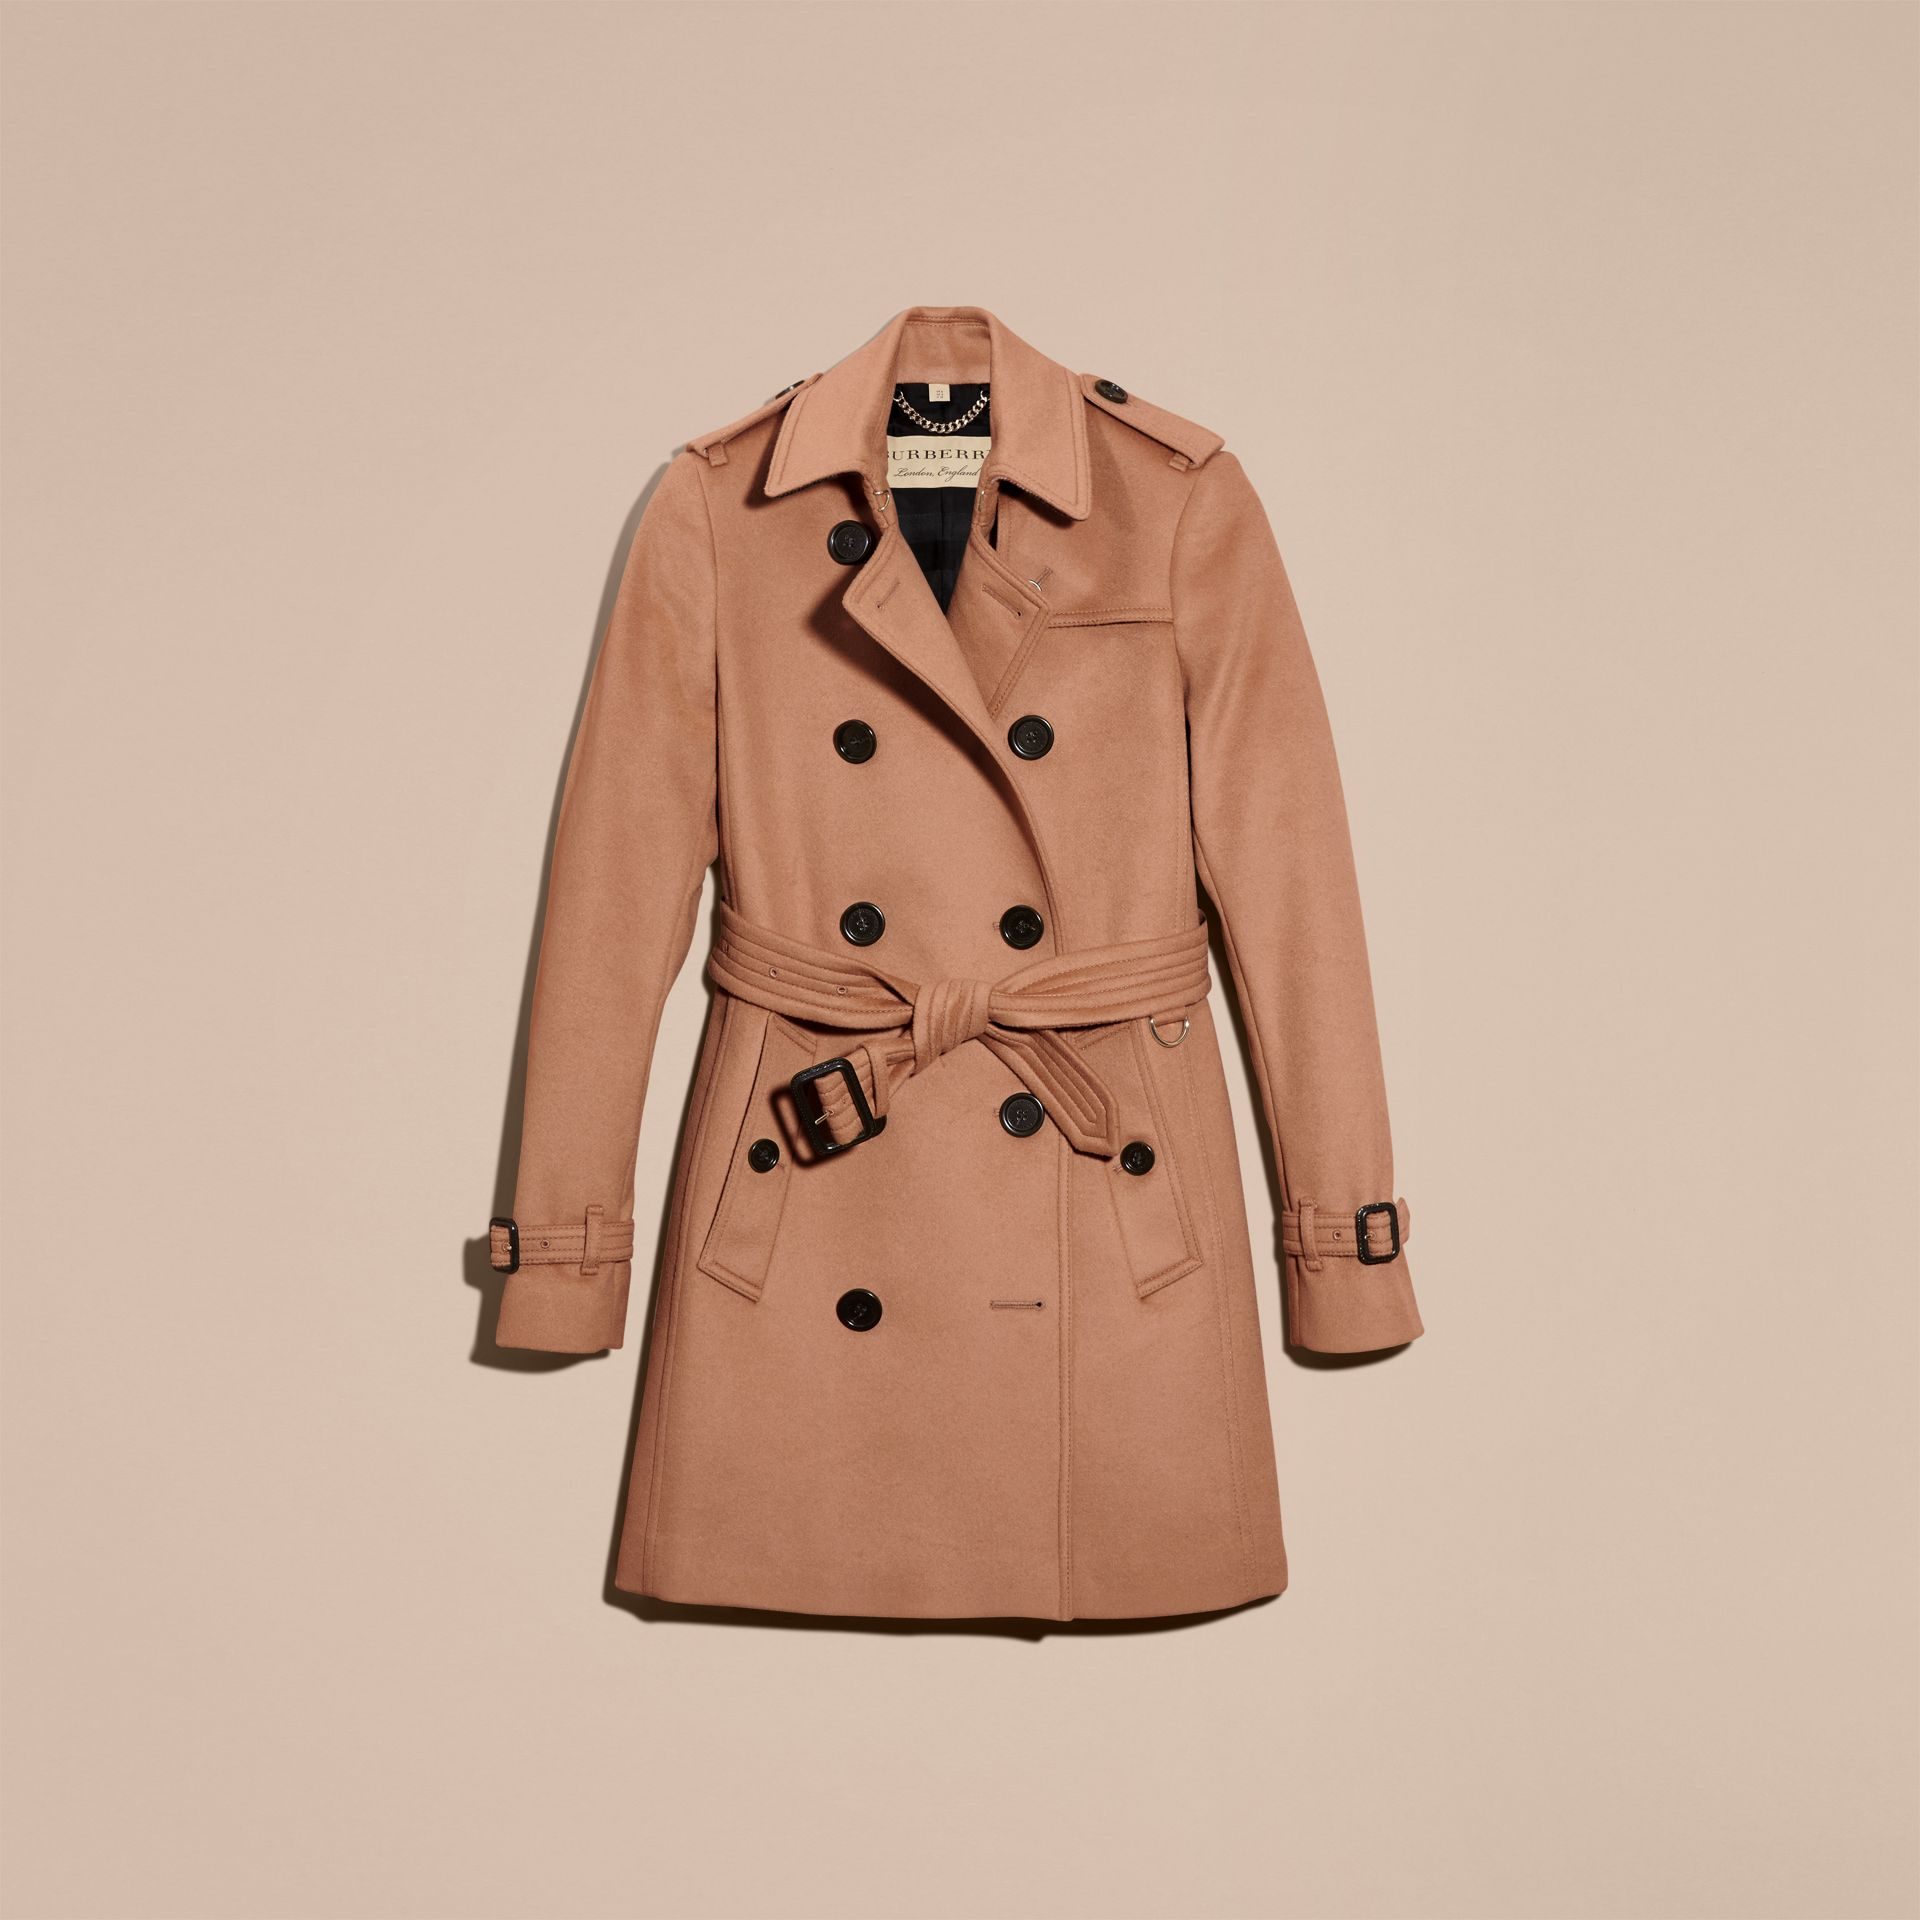 Wool Cashmere Trench Coat in Camel - Women | Burberry Canada - gallery image 4